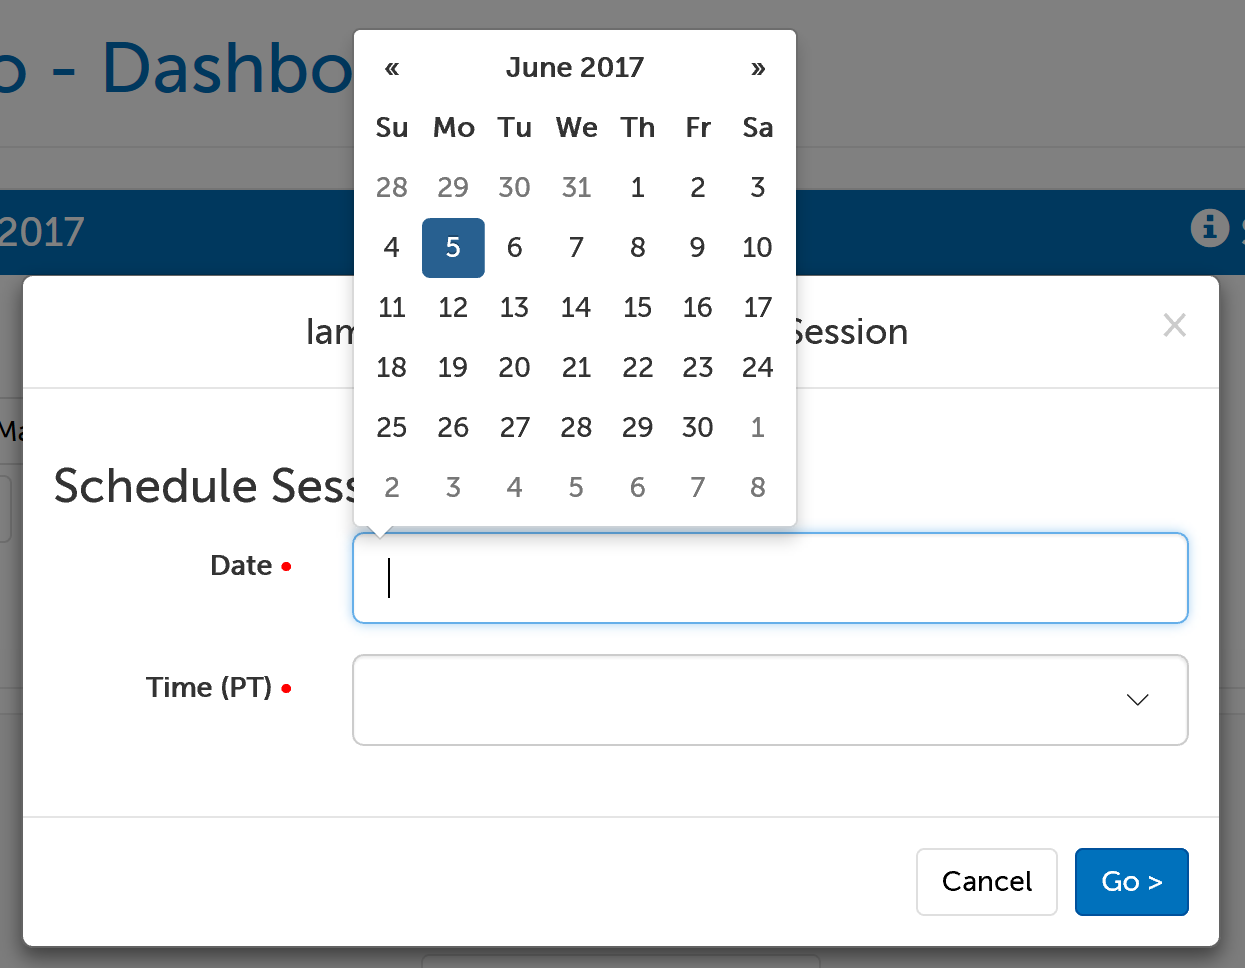 Calendar menu for selecting a session date